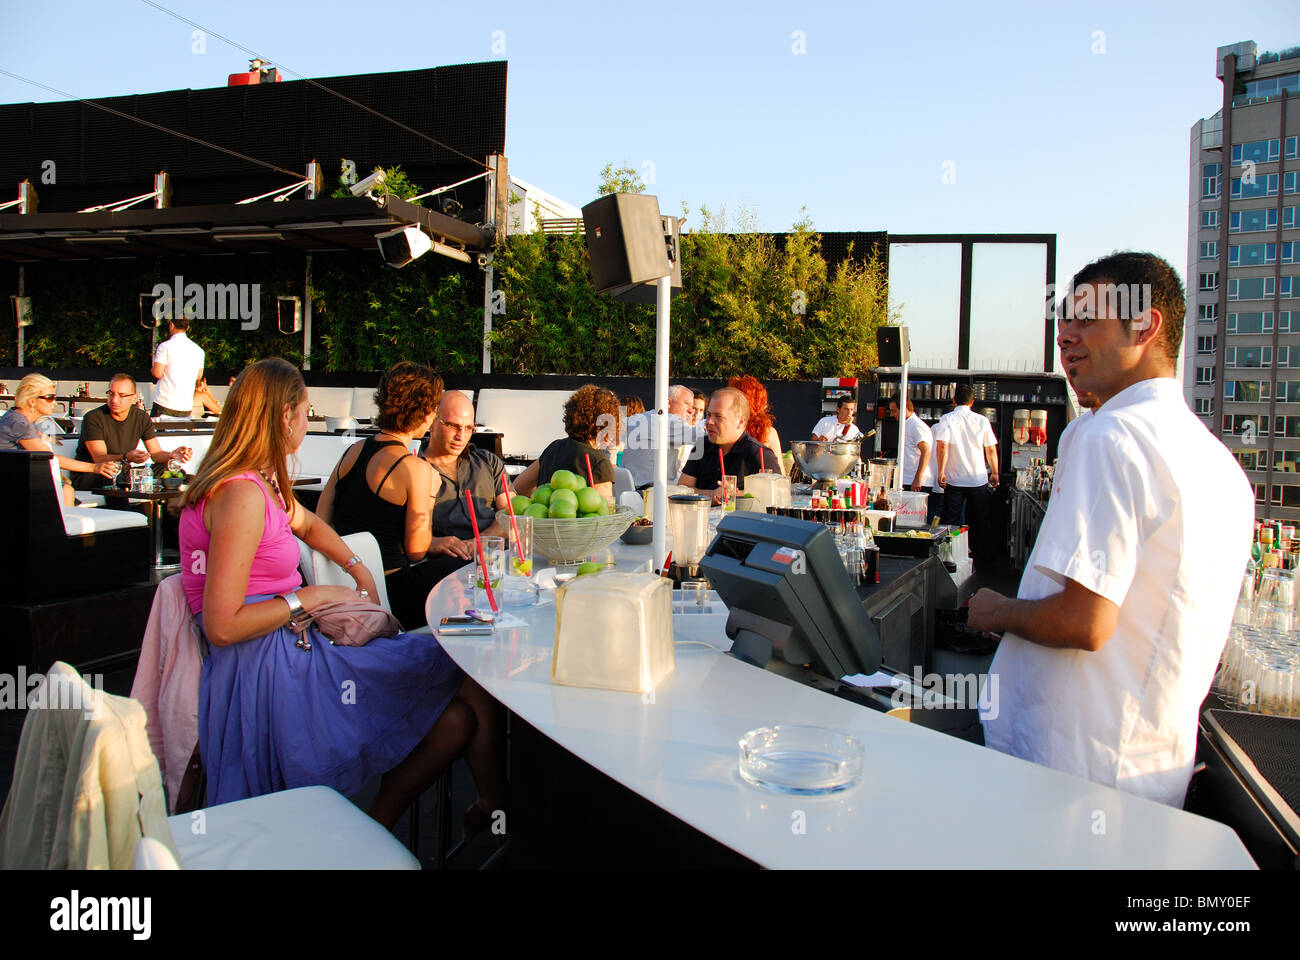 ISTANBUL, TURKEY. The bar at the fashionable rooftop restaurant of Nu Teras in the Pera district of Beyoglu. 2009. - Stock Image